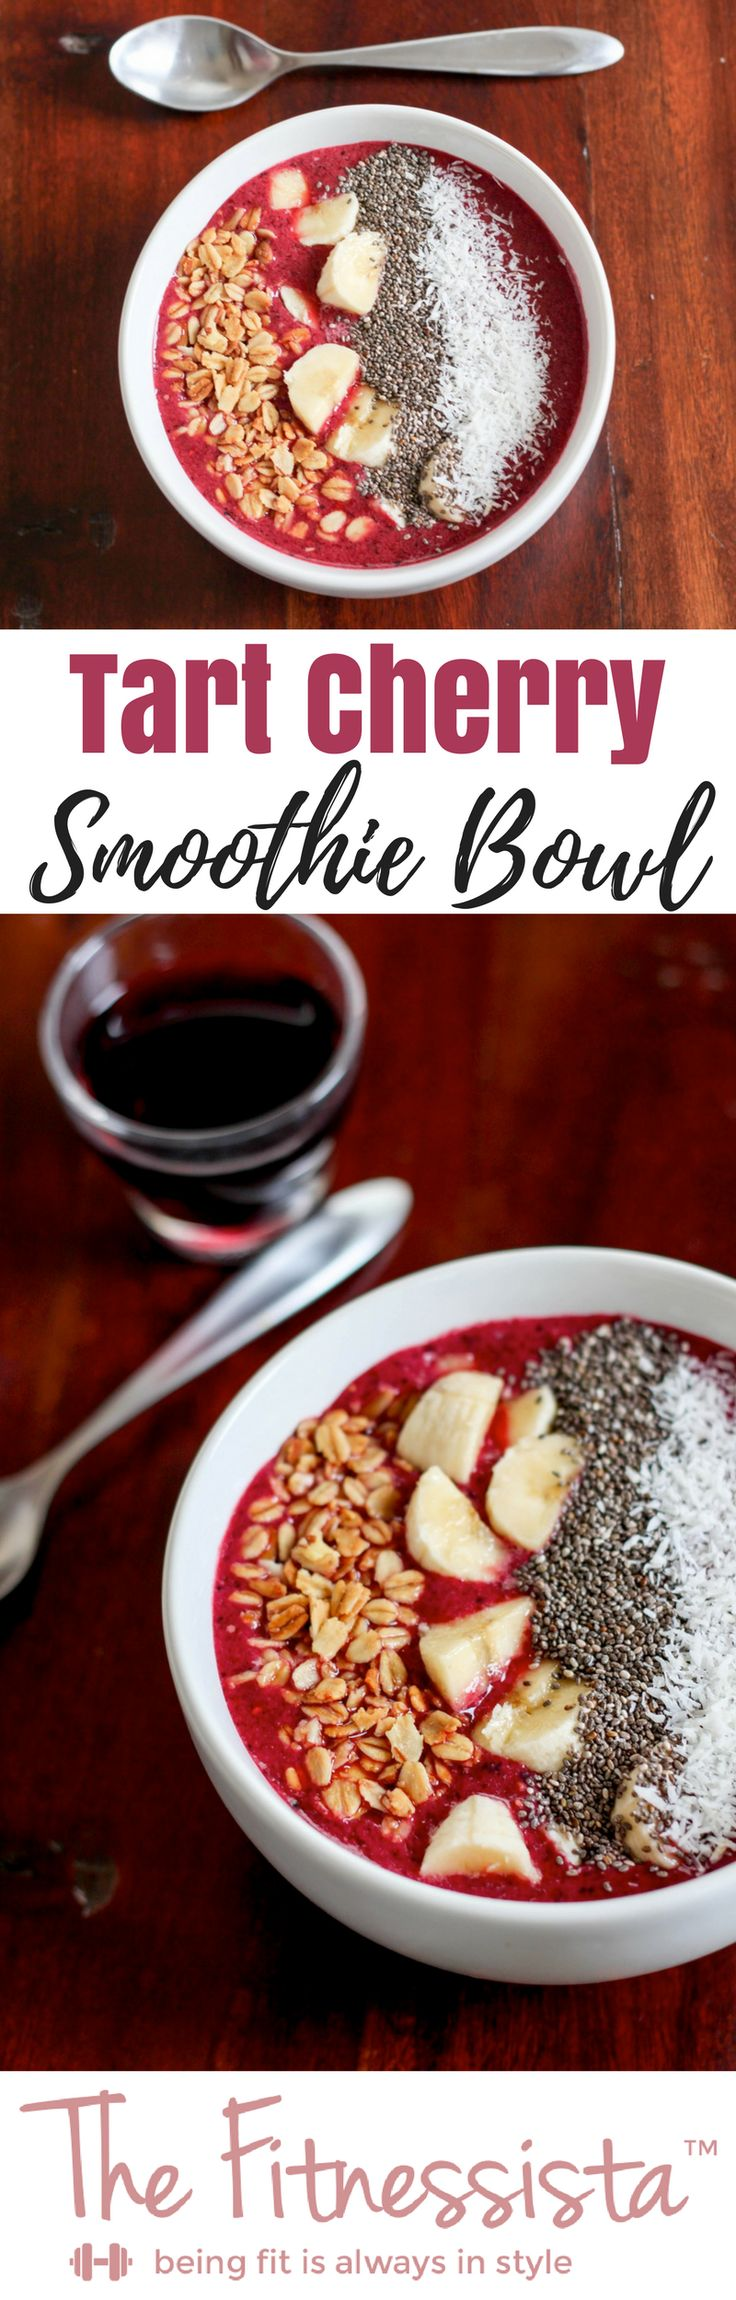 This hydrating and replenishing cherry smoothie bowl can help your muscles recover after an intense workout thanks to the tart cherry juice. fitnessista.com